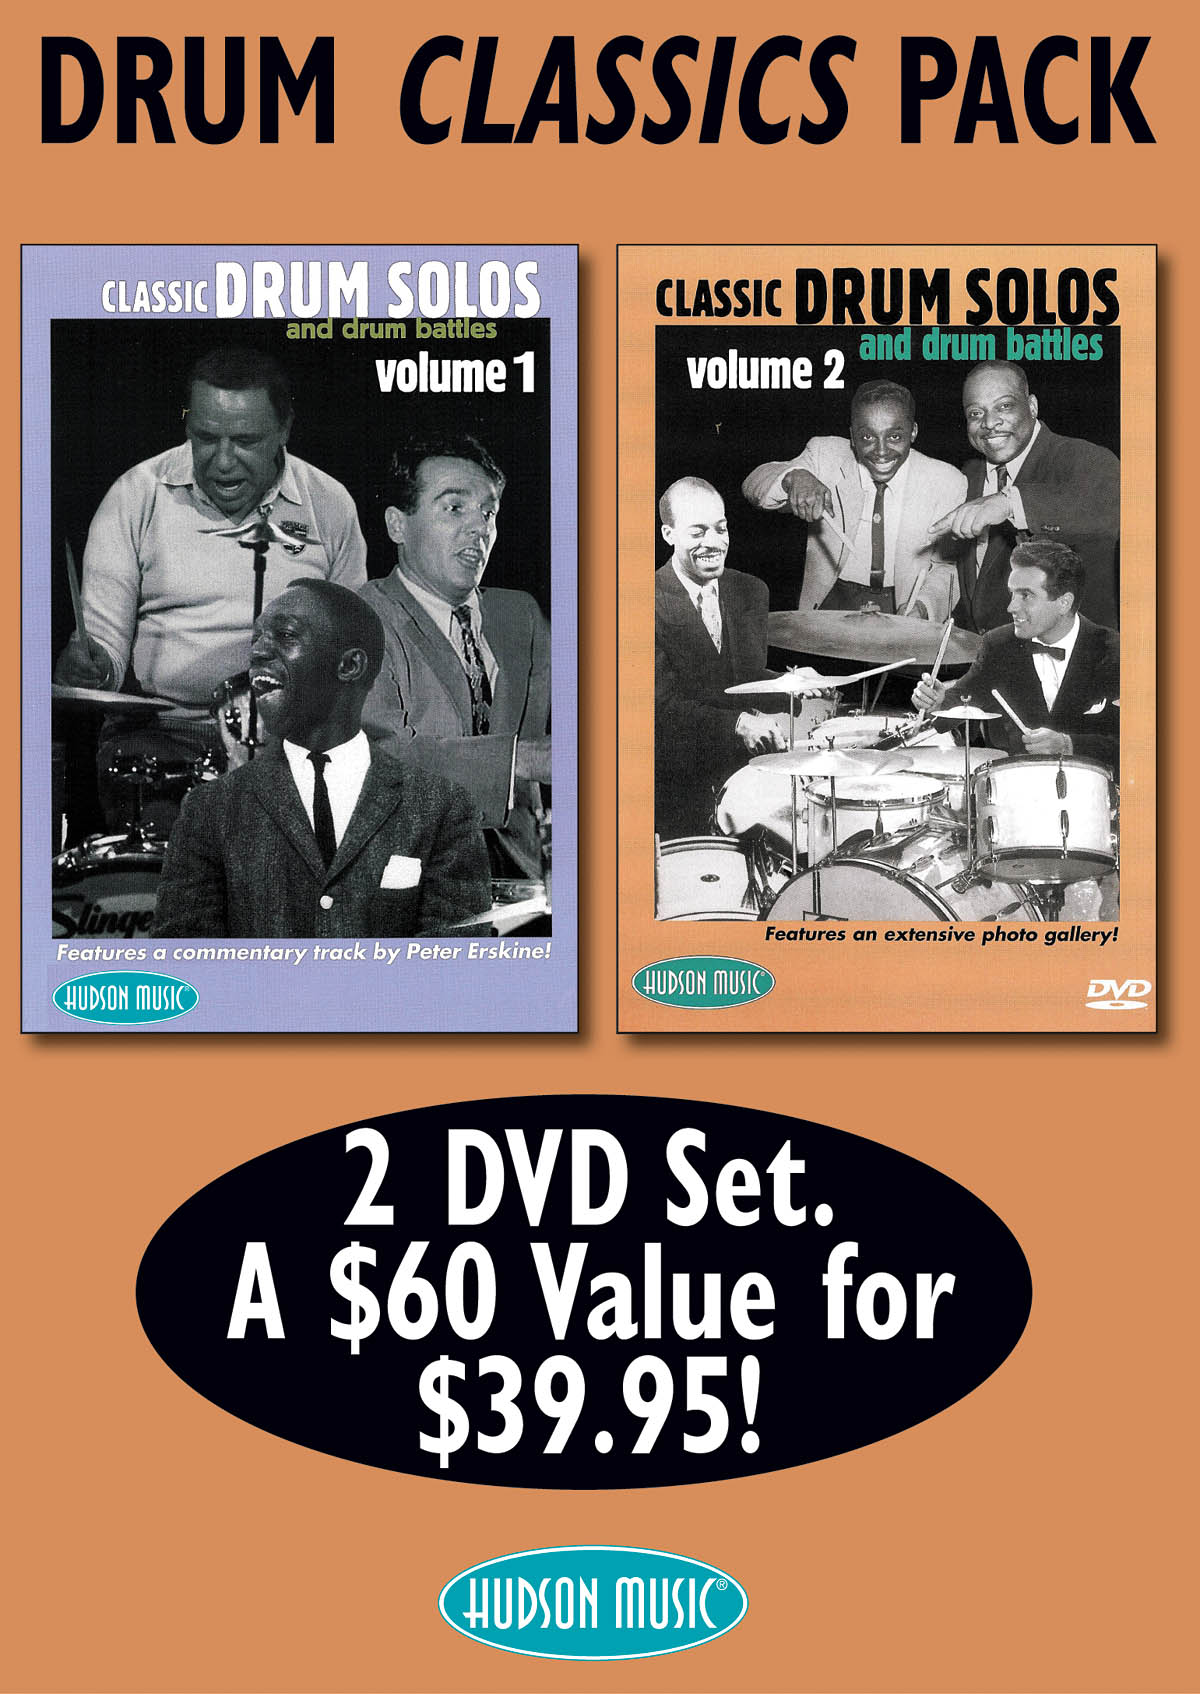 Classic Drum Solos And Drum Battles Vol. 1 And 2: Drums: Recorded Performance